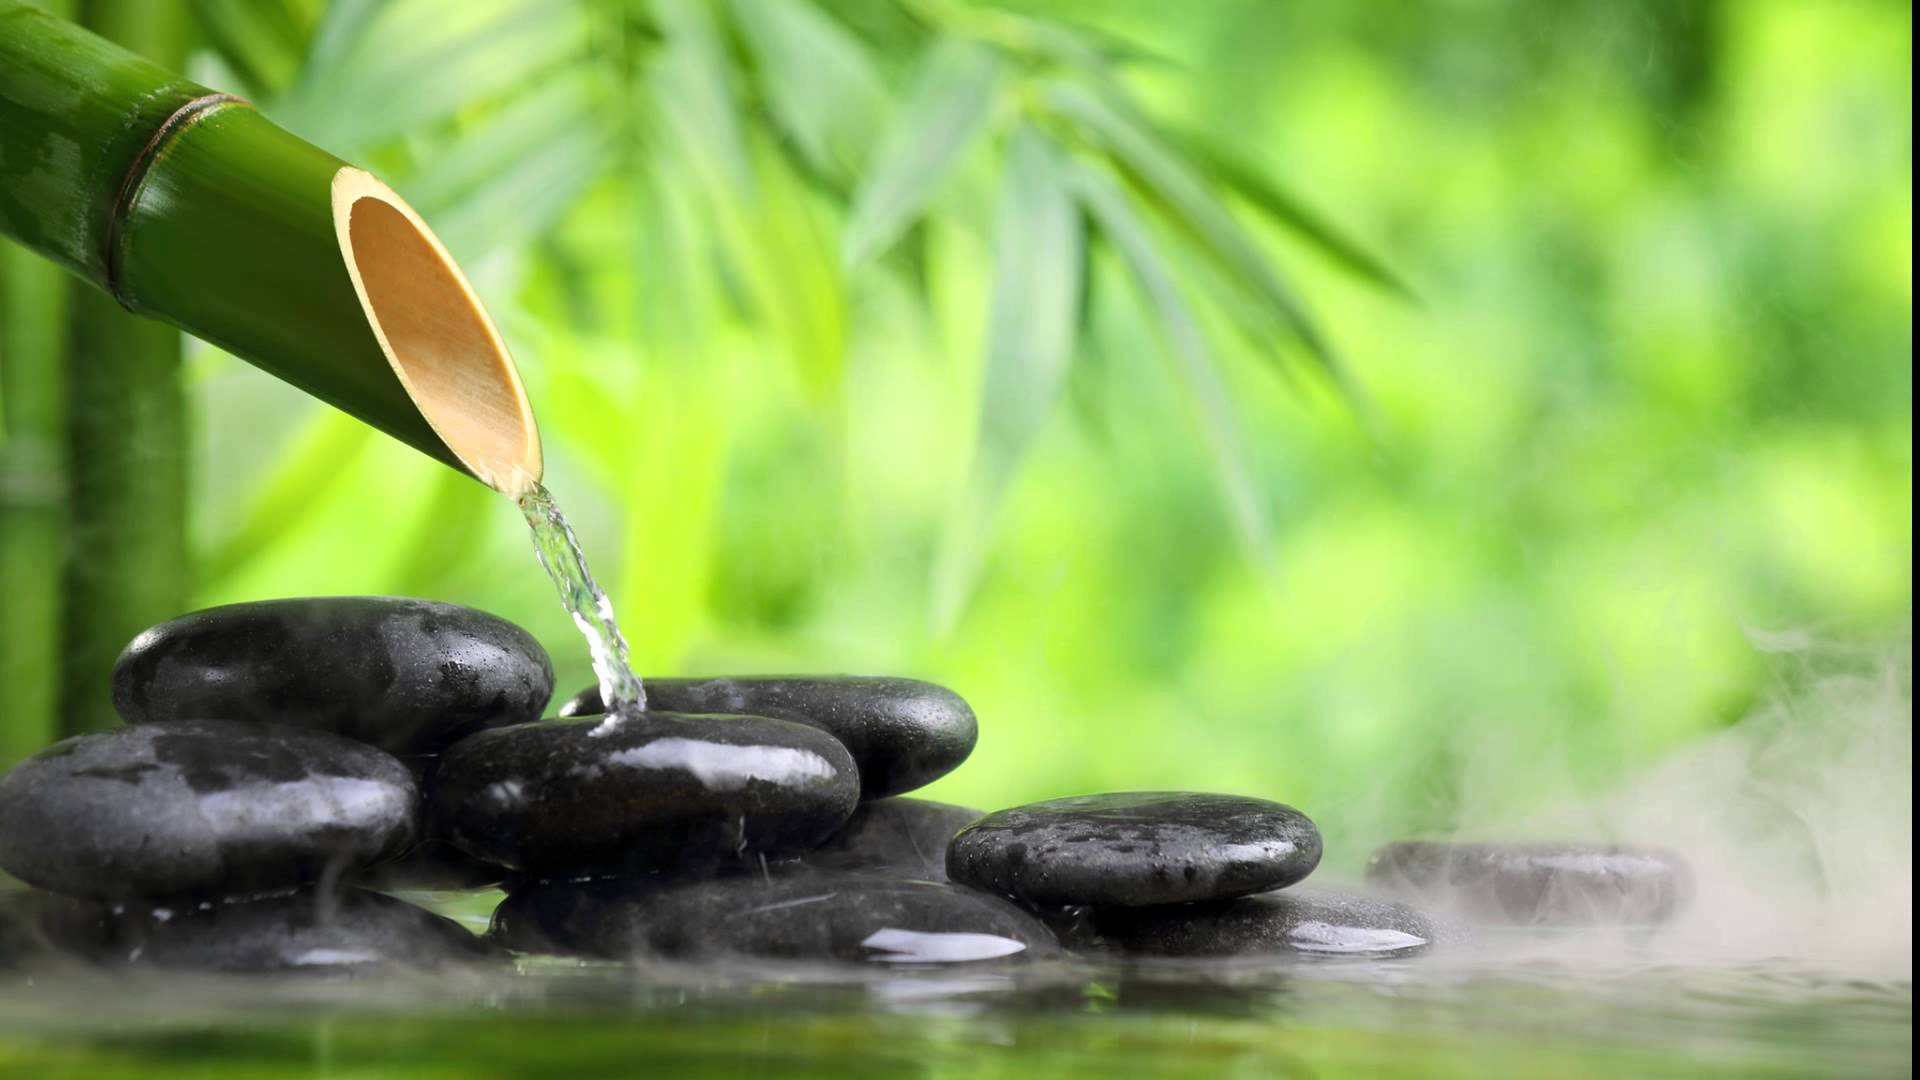 Spa Background Download Free Cool Hd Backgrounds For